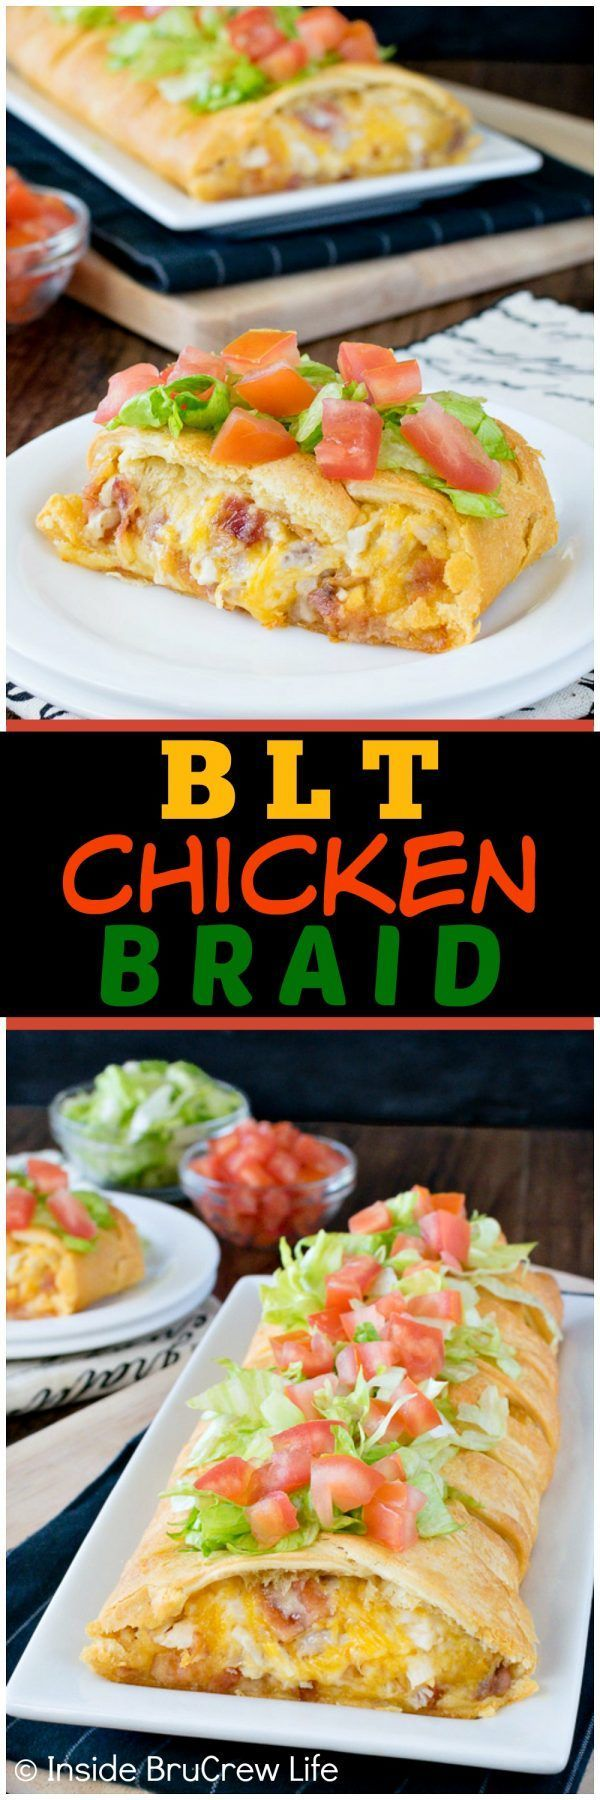 BLT Chicken Braid - bacon, cheese, and chicken inside a warm flakey dough is a delicious way to do dinner on a busy day. Add lettuce and tomatoes to make it just like the classic sandwich!